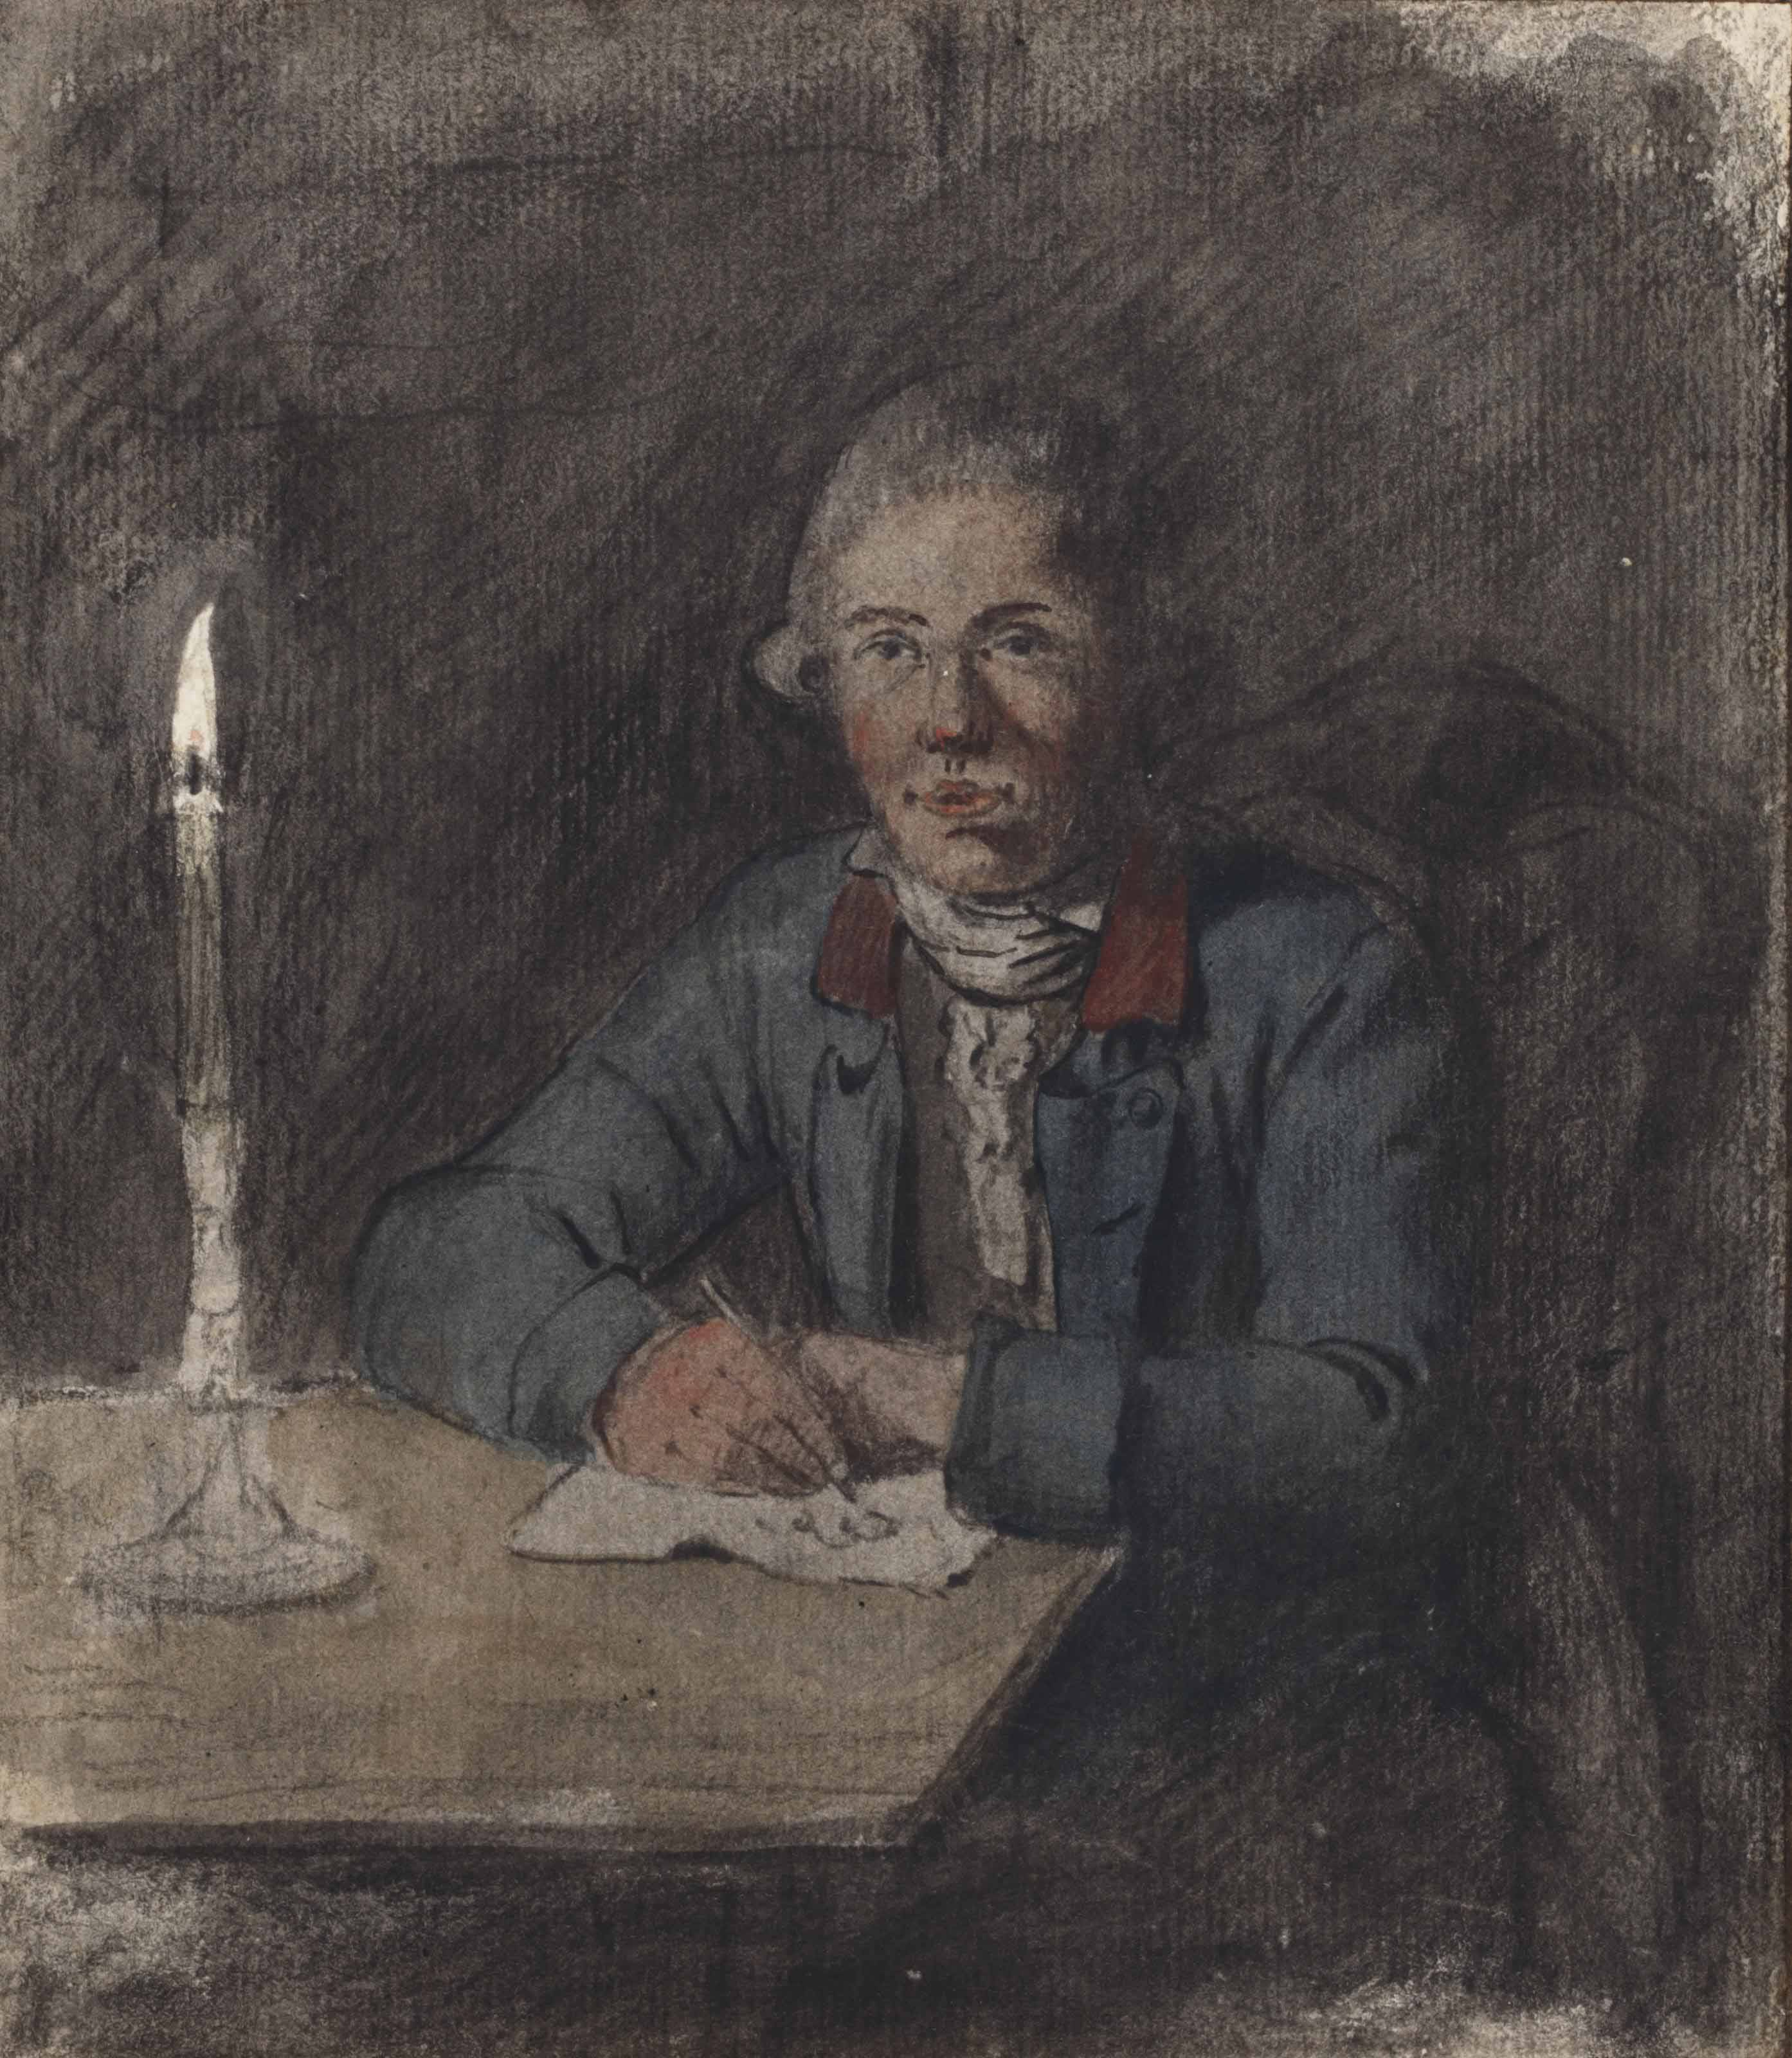 Self-Portrait at a table with a candle